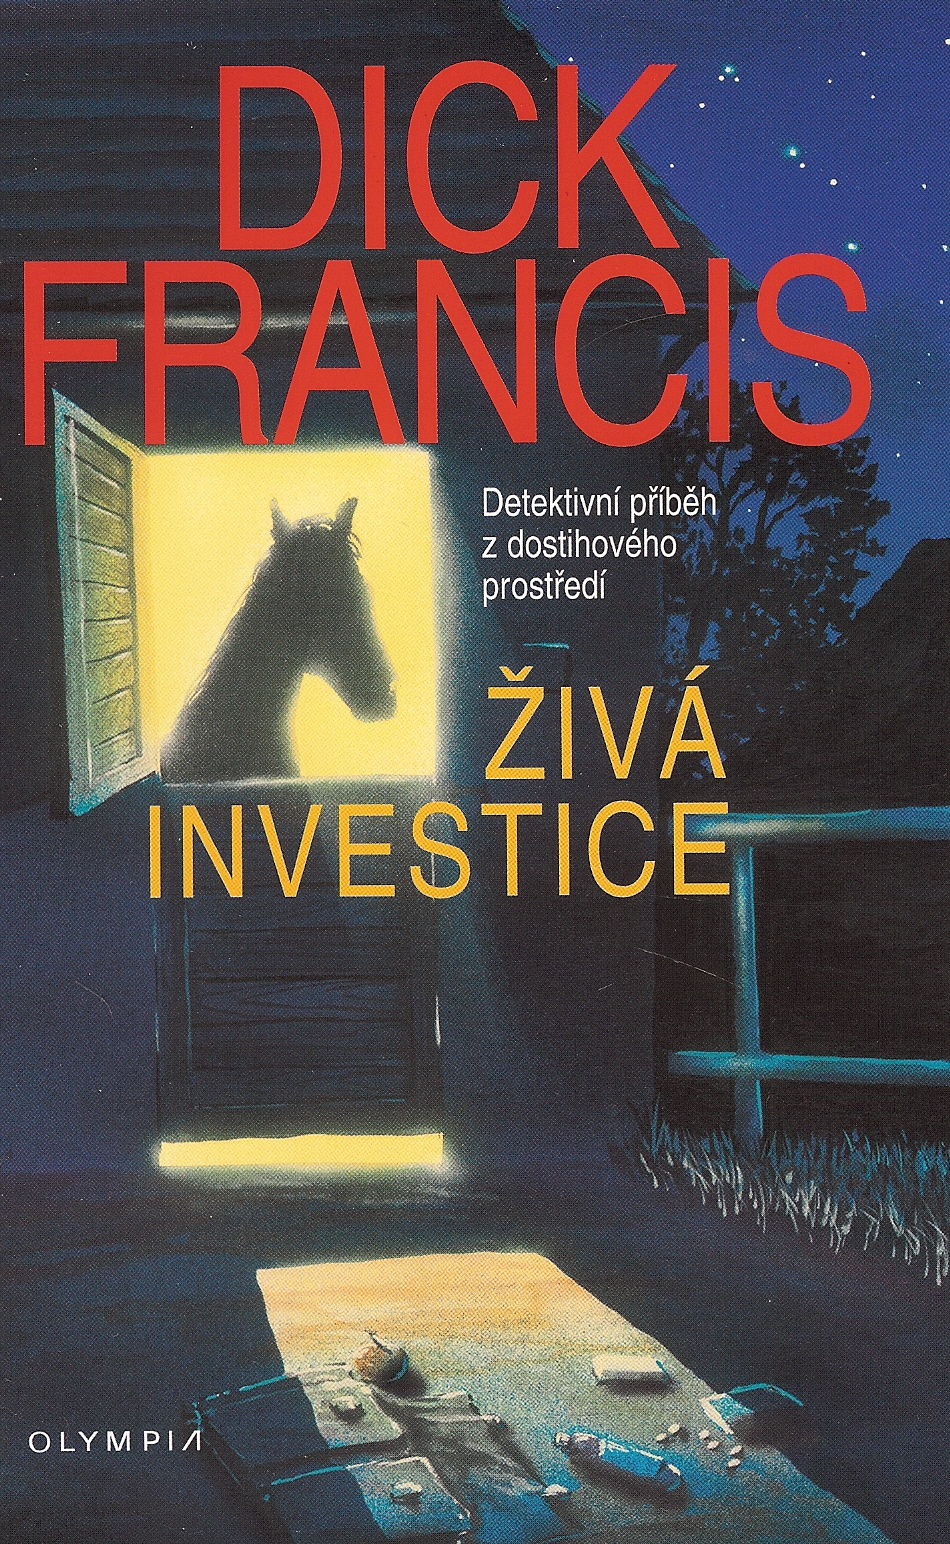 Dick Francis Dvd 76